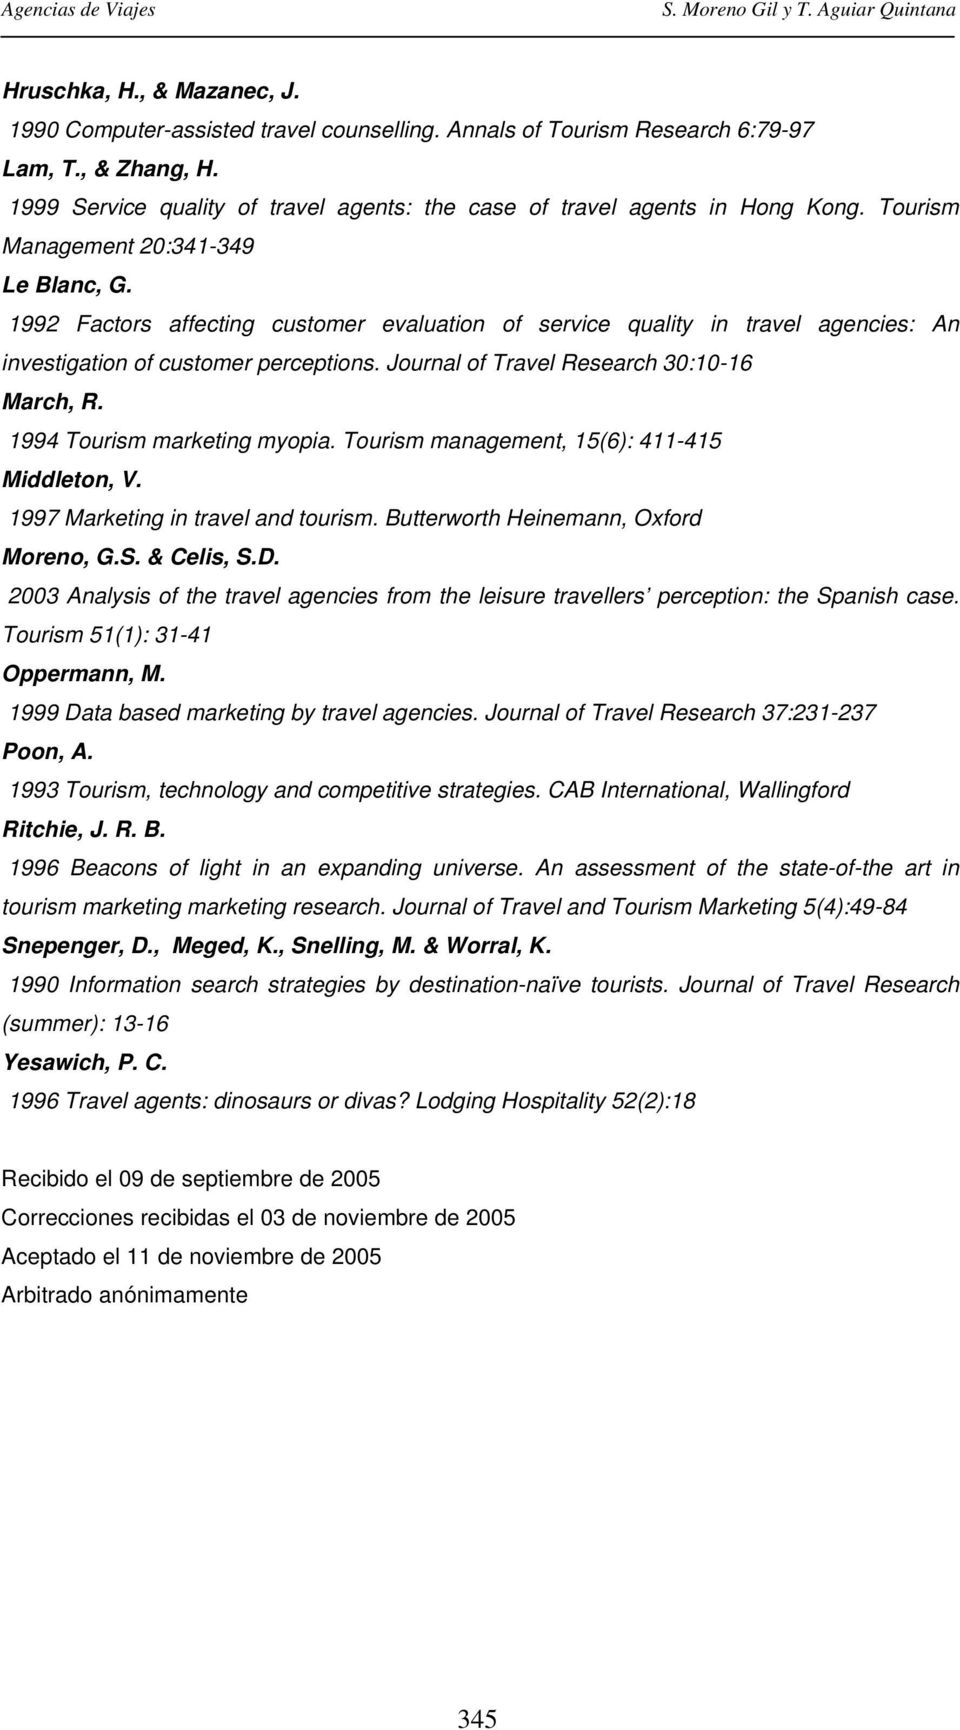 1992 Factors affecting customer evaluation of service quality in travel agencies: An investigation of customer perceptions. Journal of Travel Research 30:10-16 March, R. 1994 Tourism marketing myopia.